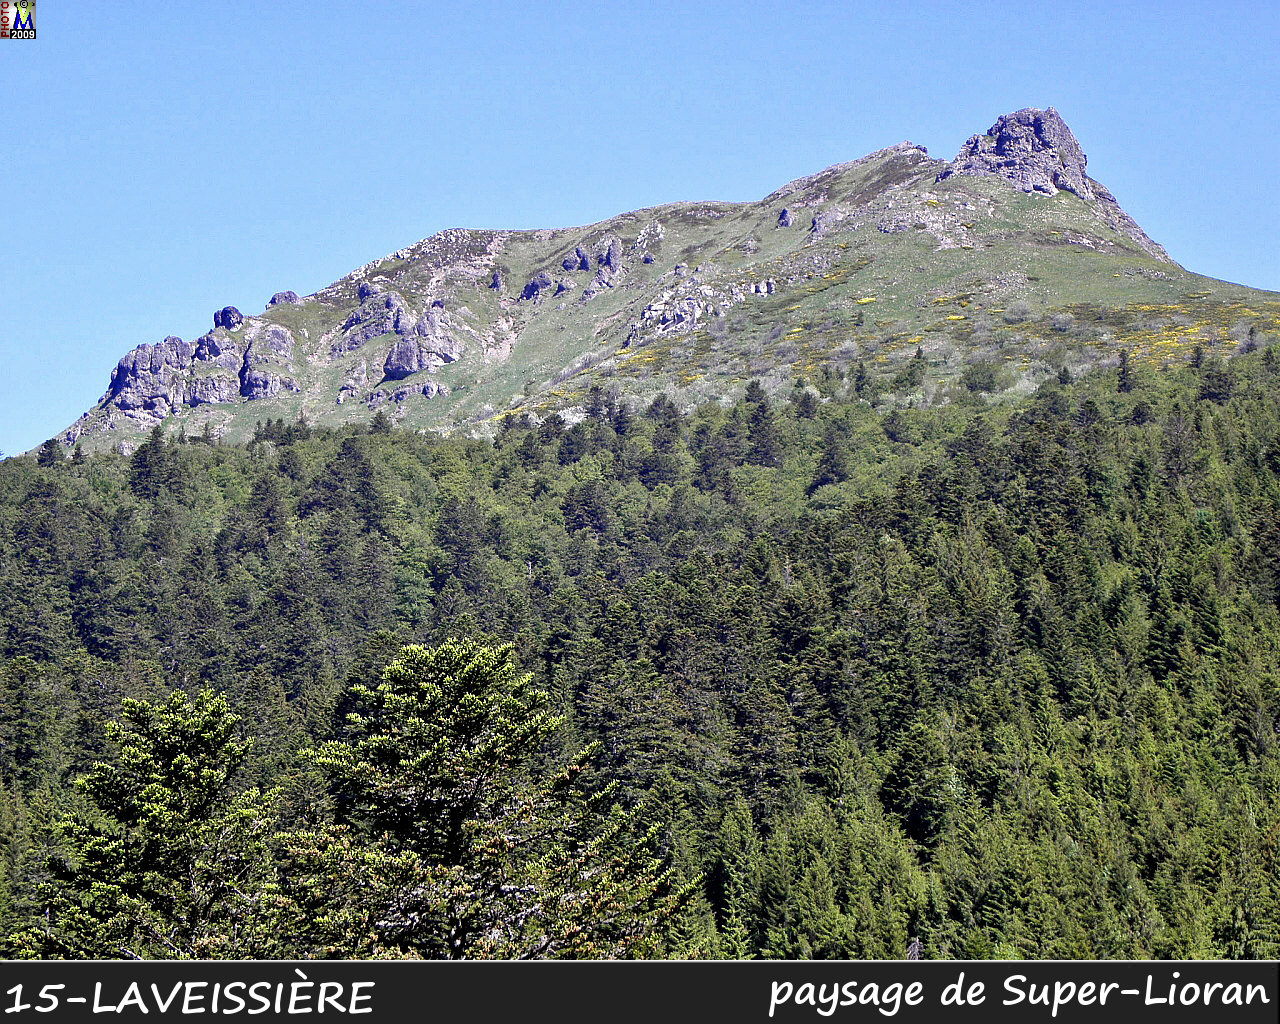 15LAVEISSIERE_paysage_100.jpg